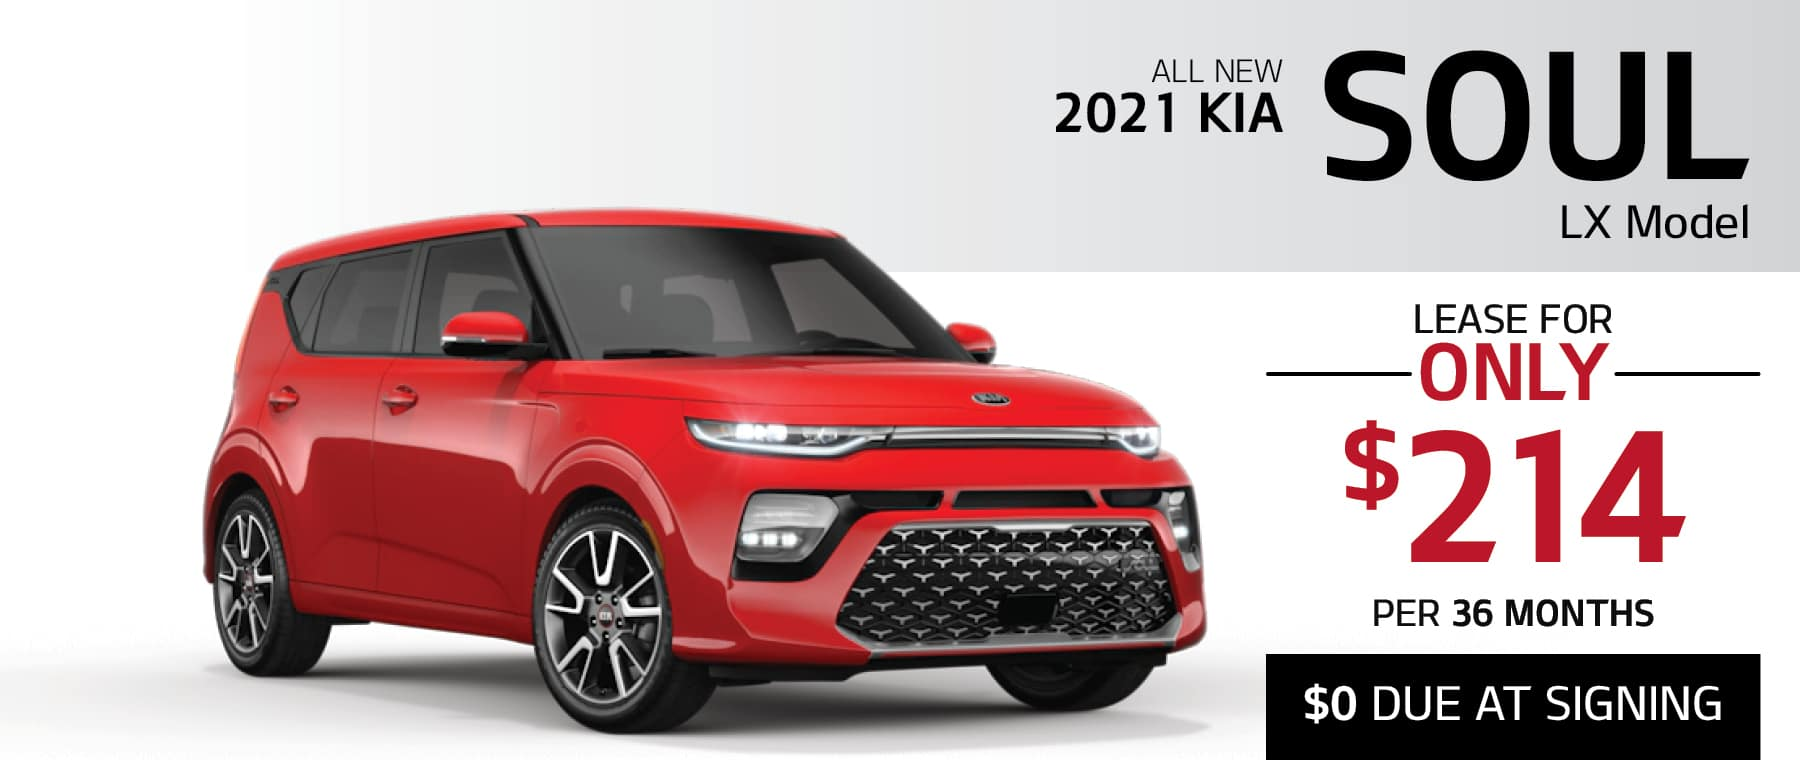 2021 Kia Soul LX lease for $214 per month for 36 months with $0 due at signing